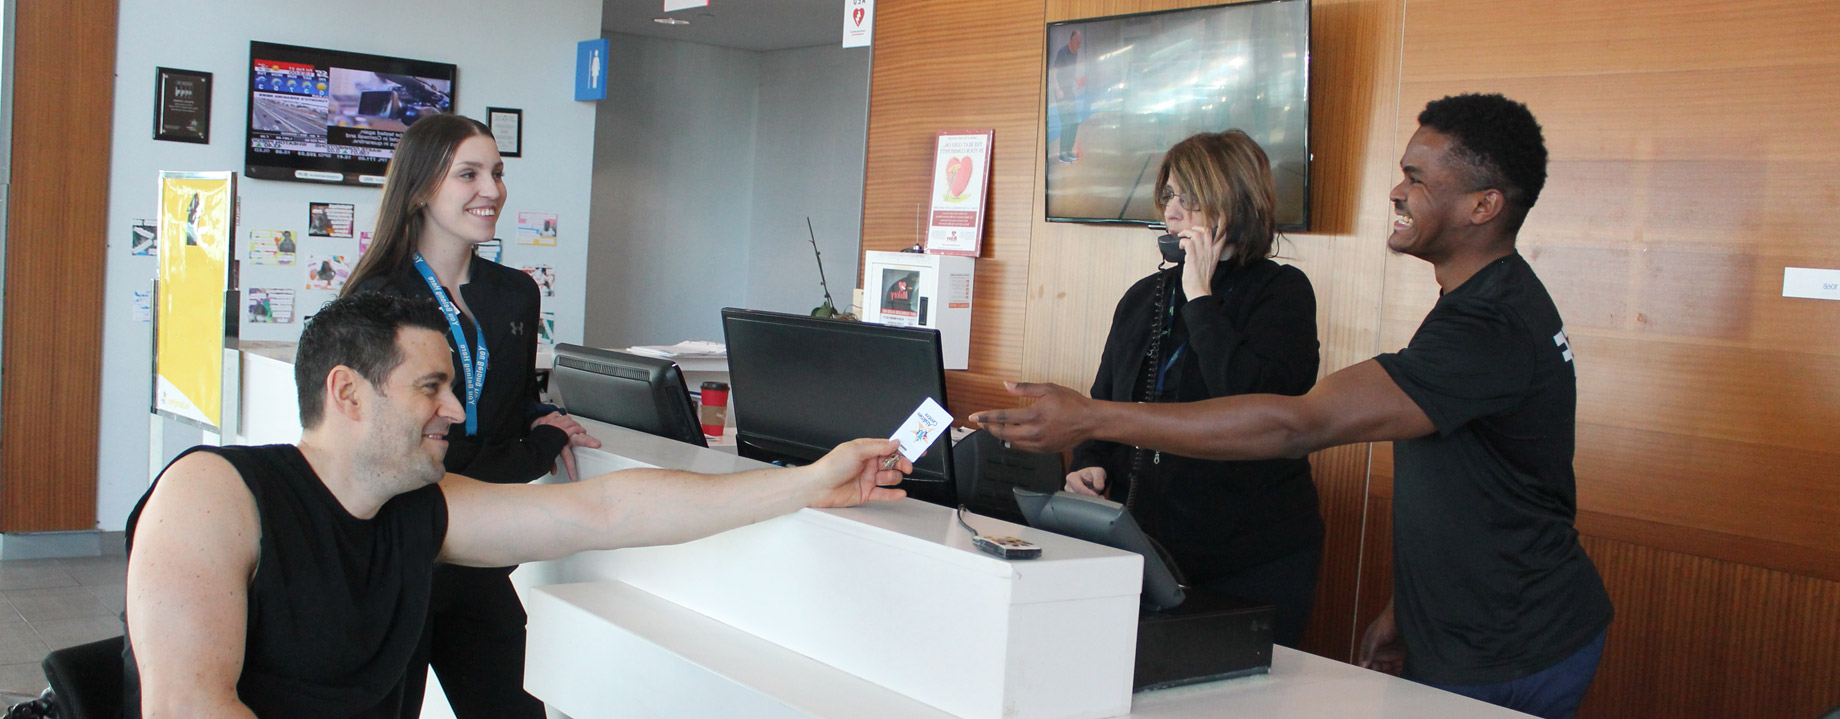 Member greeted by friendly Abilities Centre front desk staff